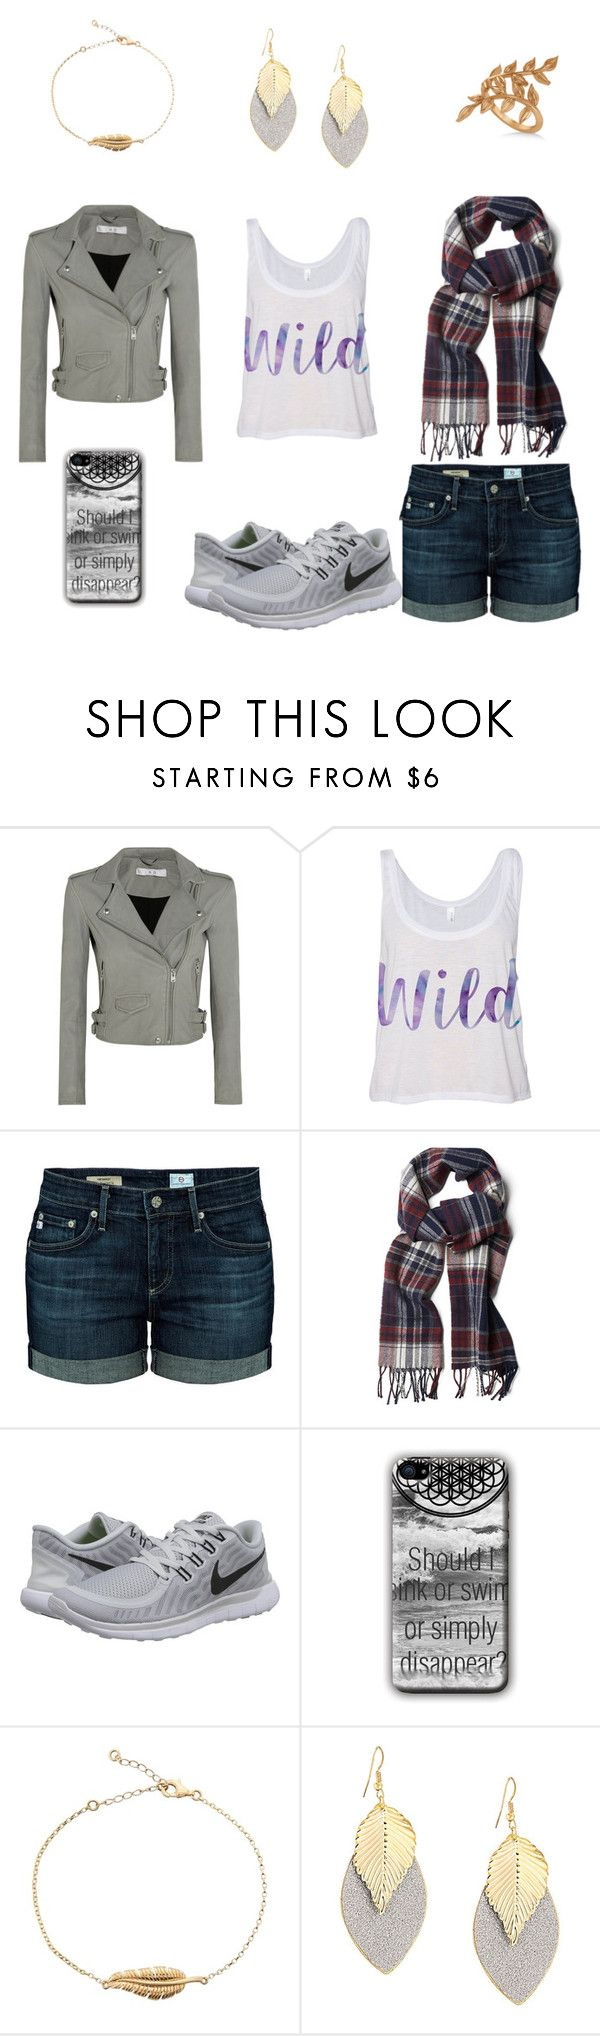 """""""Summer to fall"""" by yyyyyx ❤ liked on Polyvore featuring IRO, AG Adriano Goldschmied, GANT, NIKE and Allurez"""